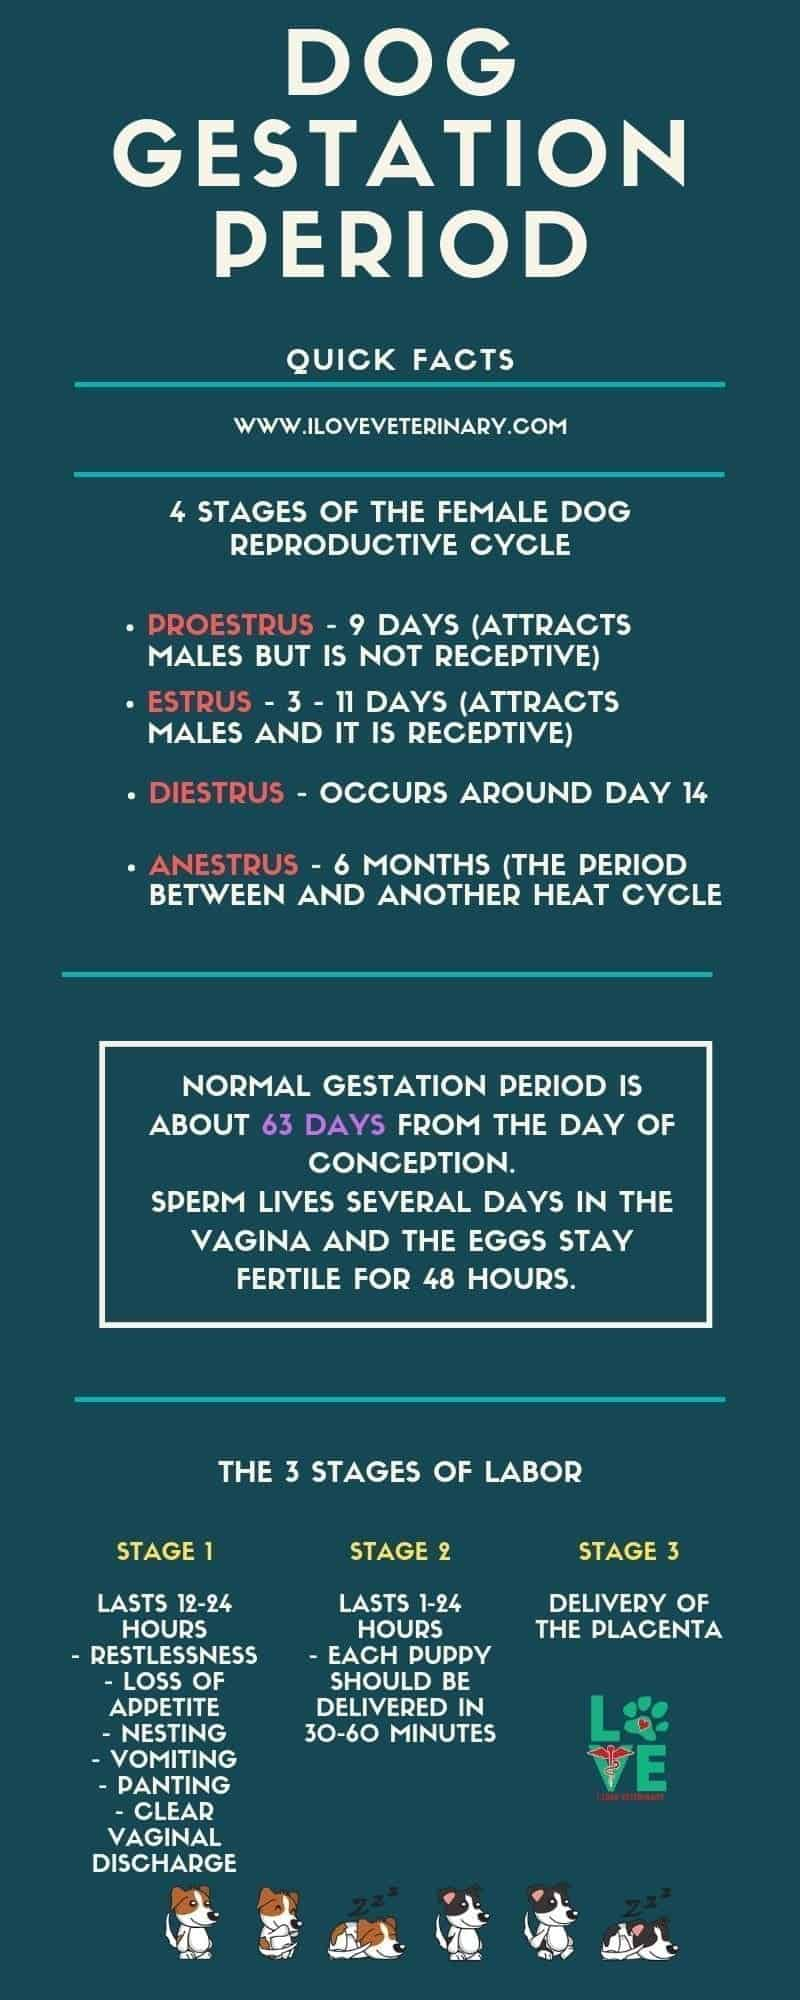 dog gestation period infographic